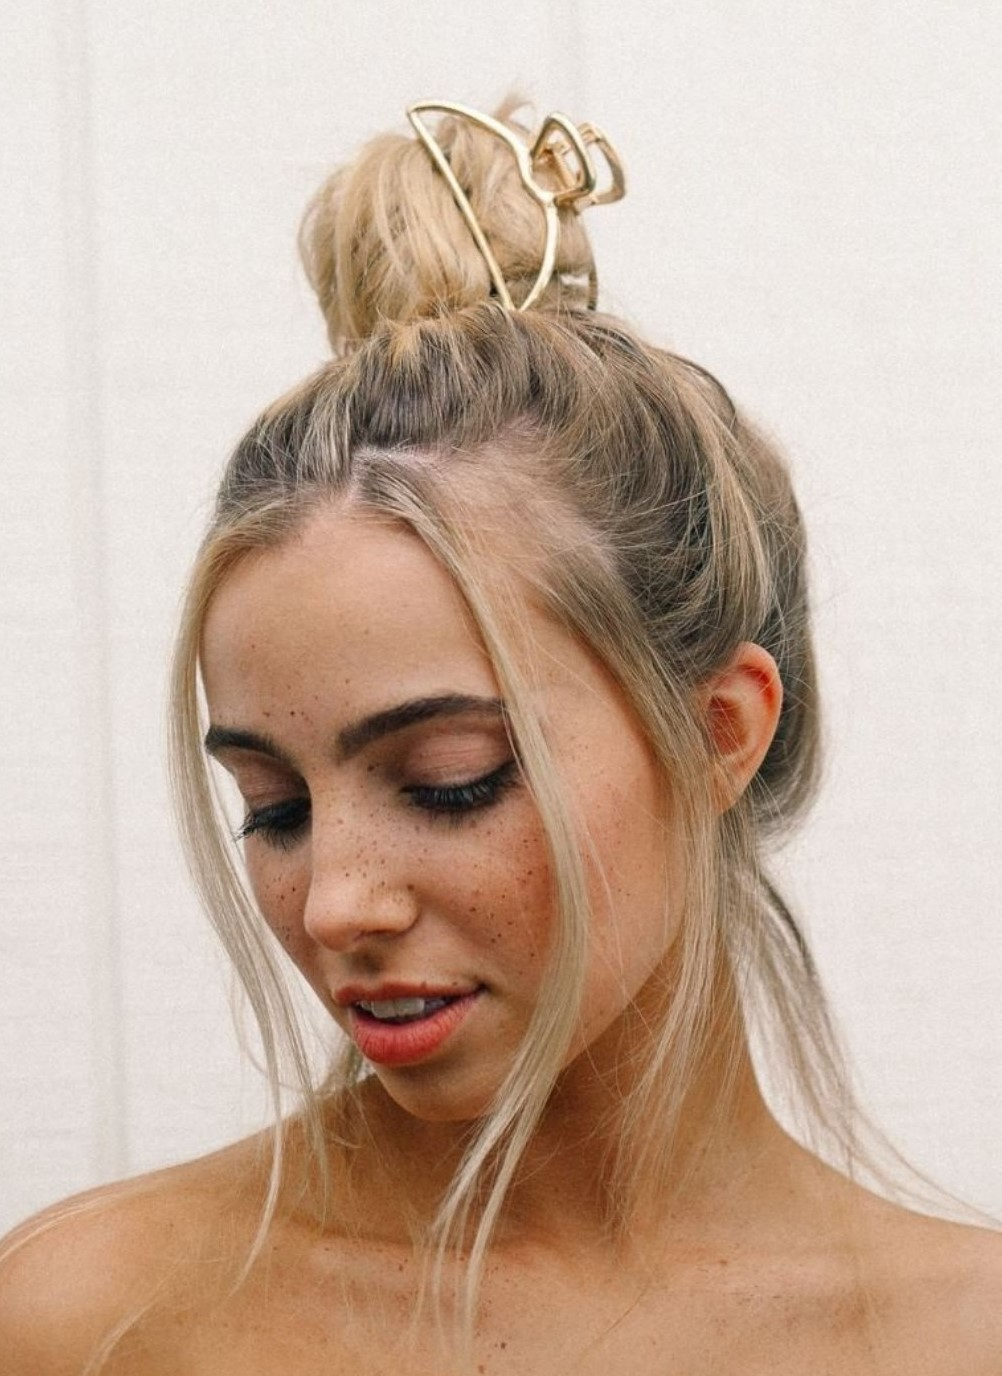 how-to-style-hair-accessories-claw-clips-butterfly-banana-trend-bun-messy-gold.jpg